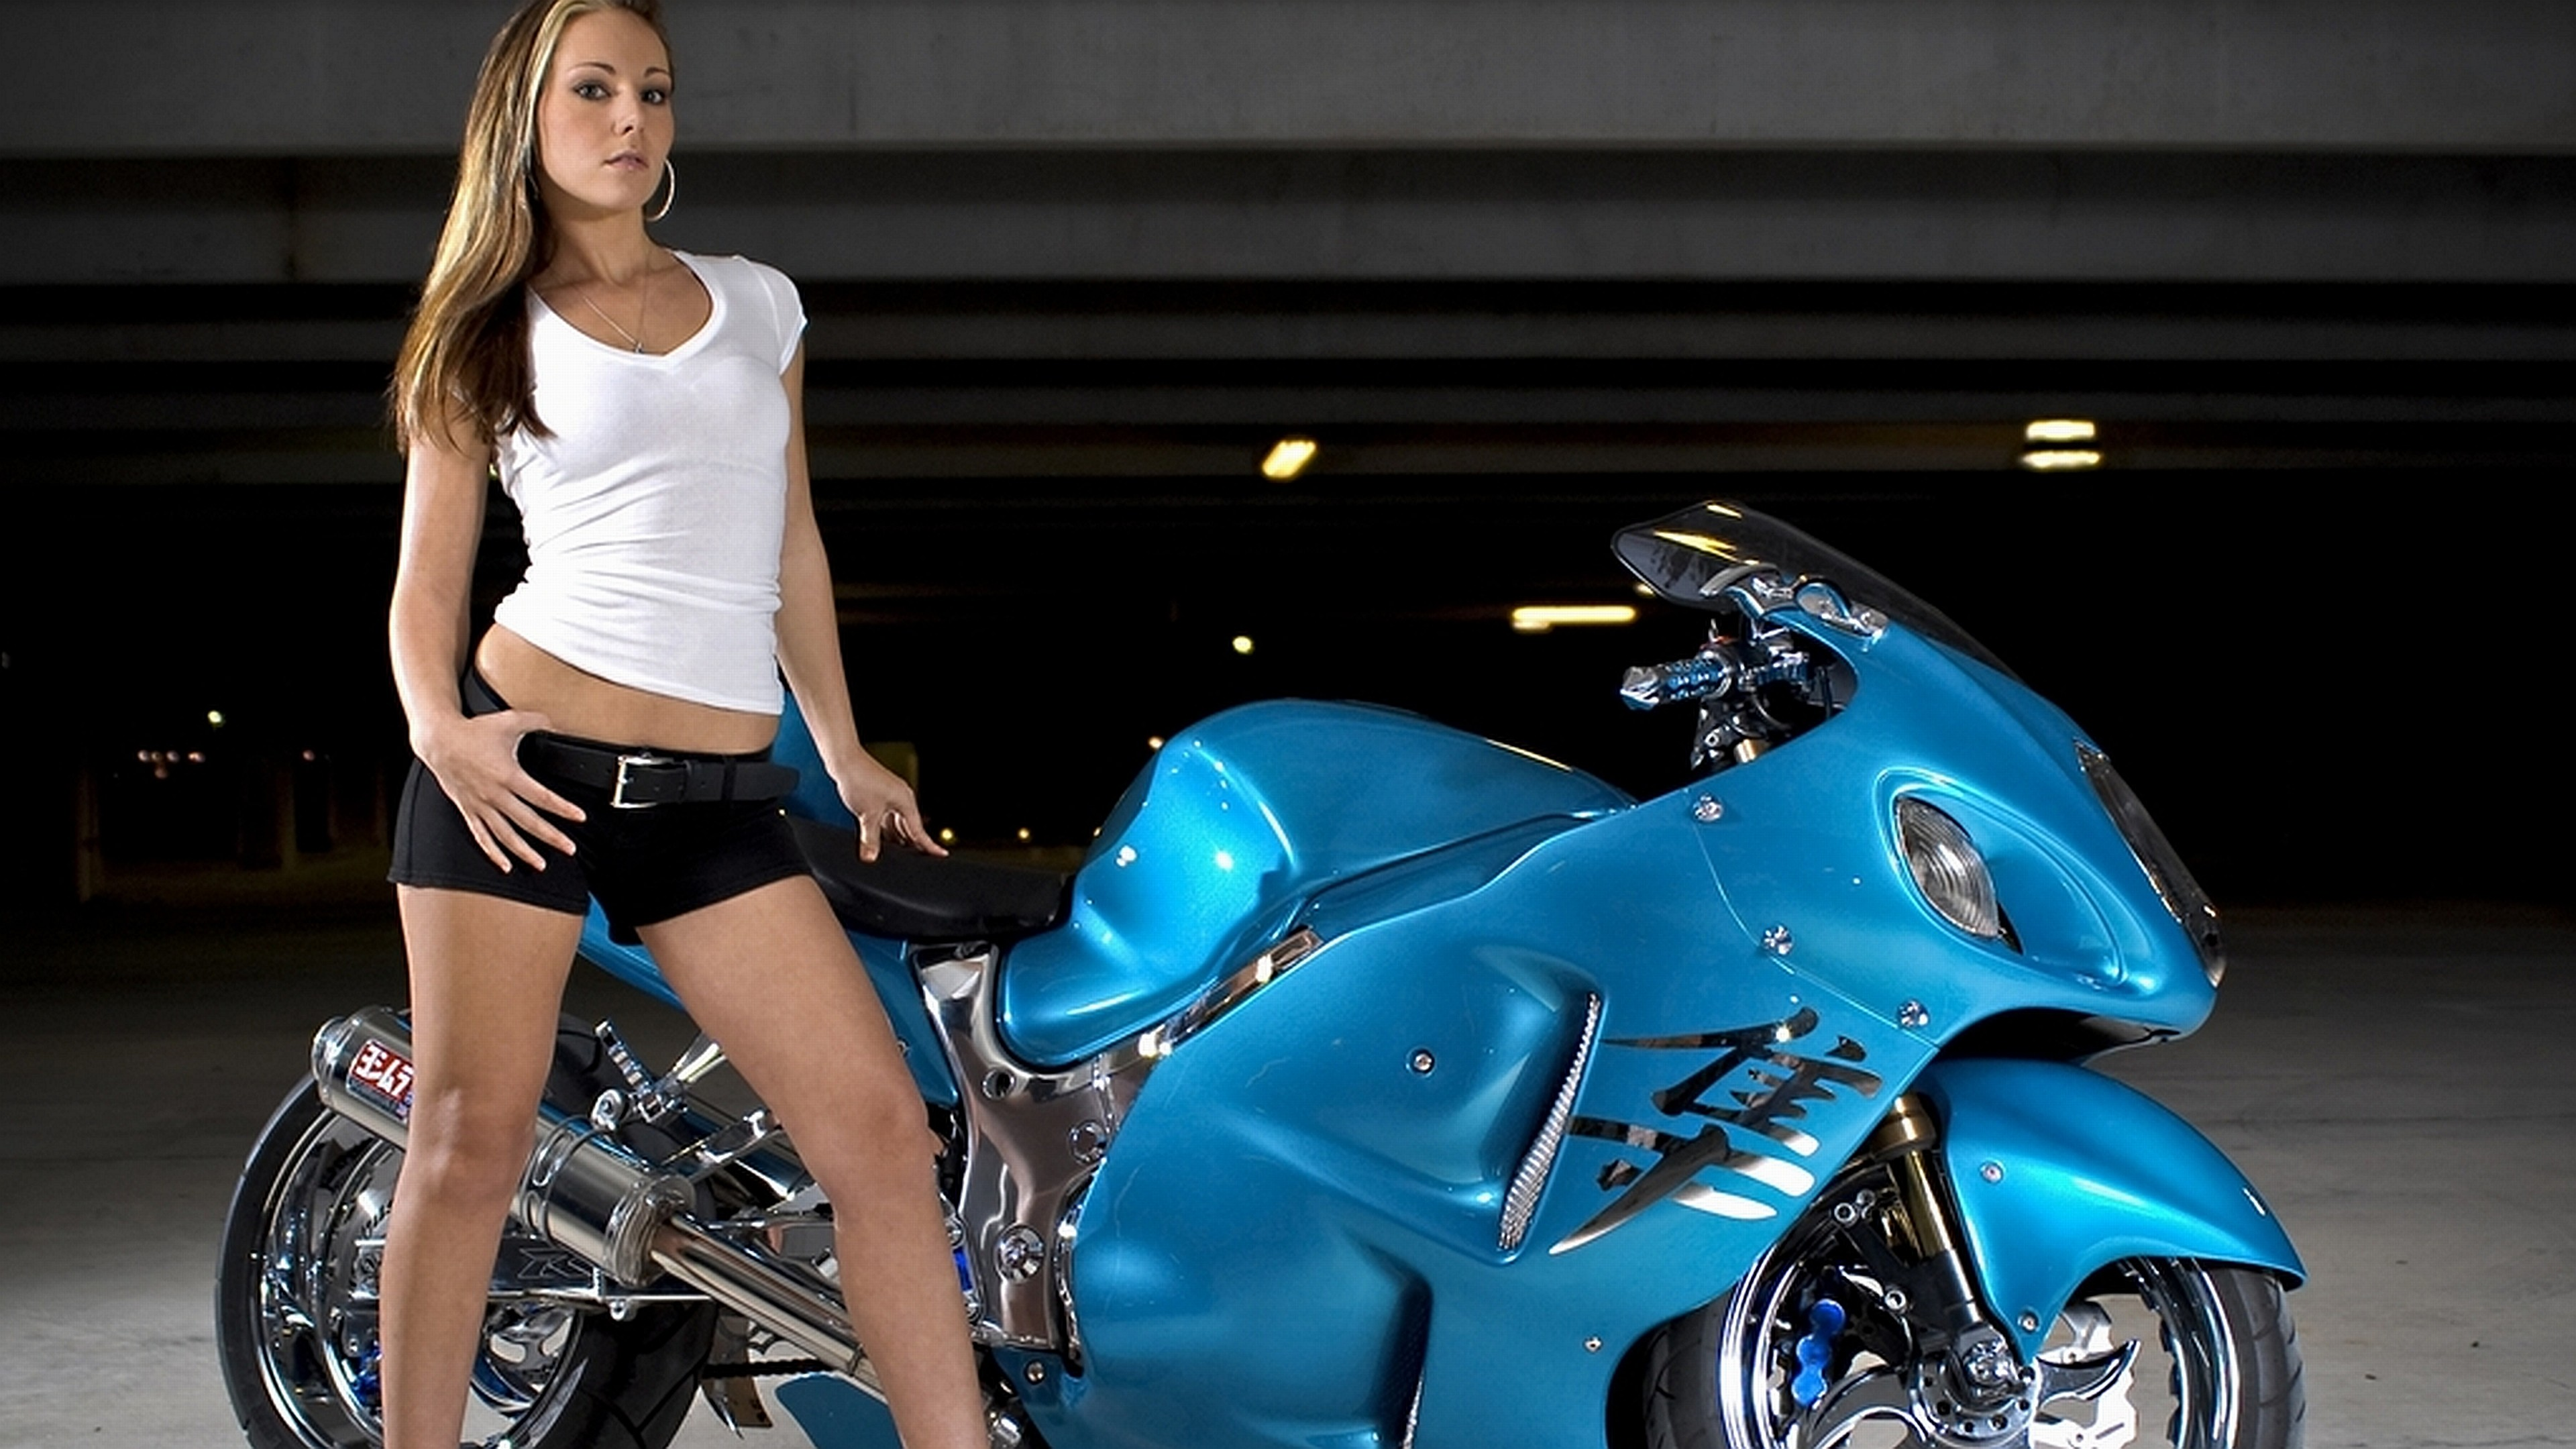 girls and motorcycles Wallpaper Background   44641